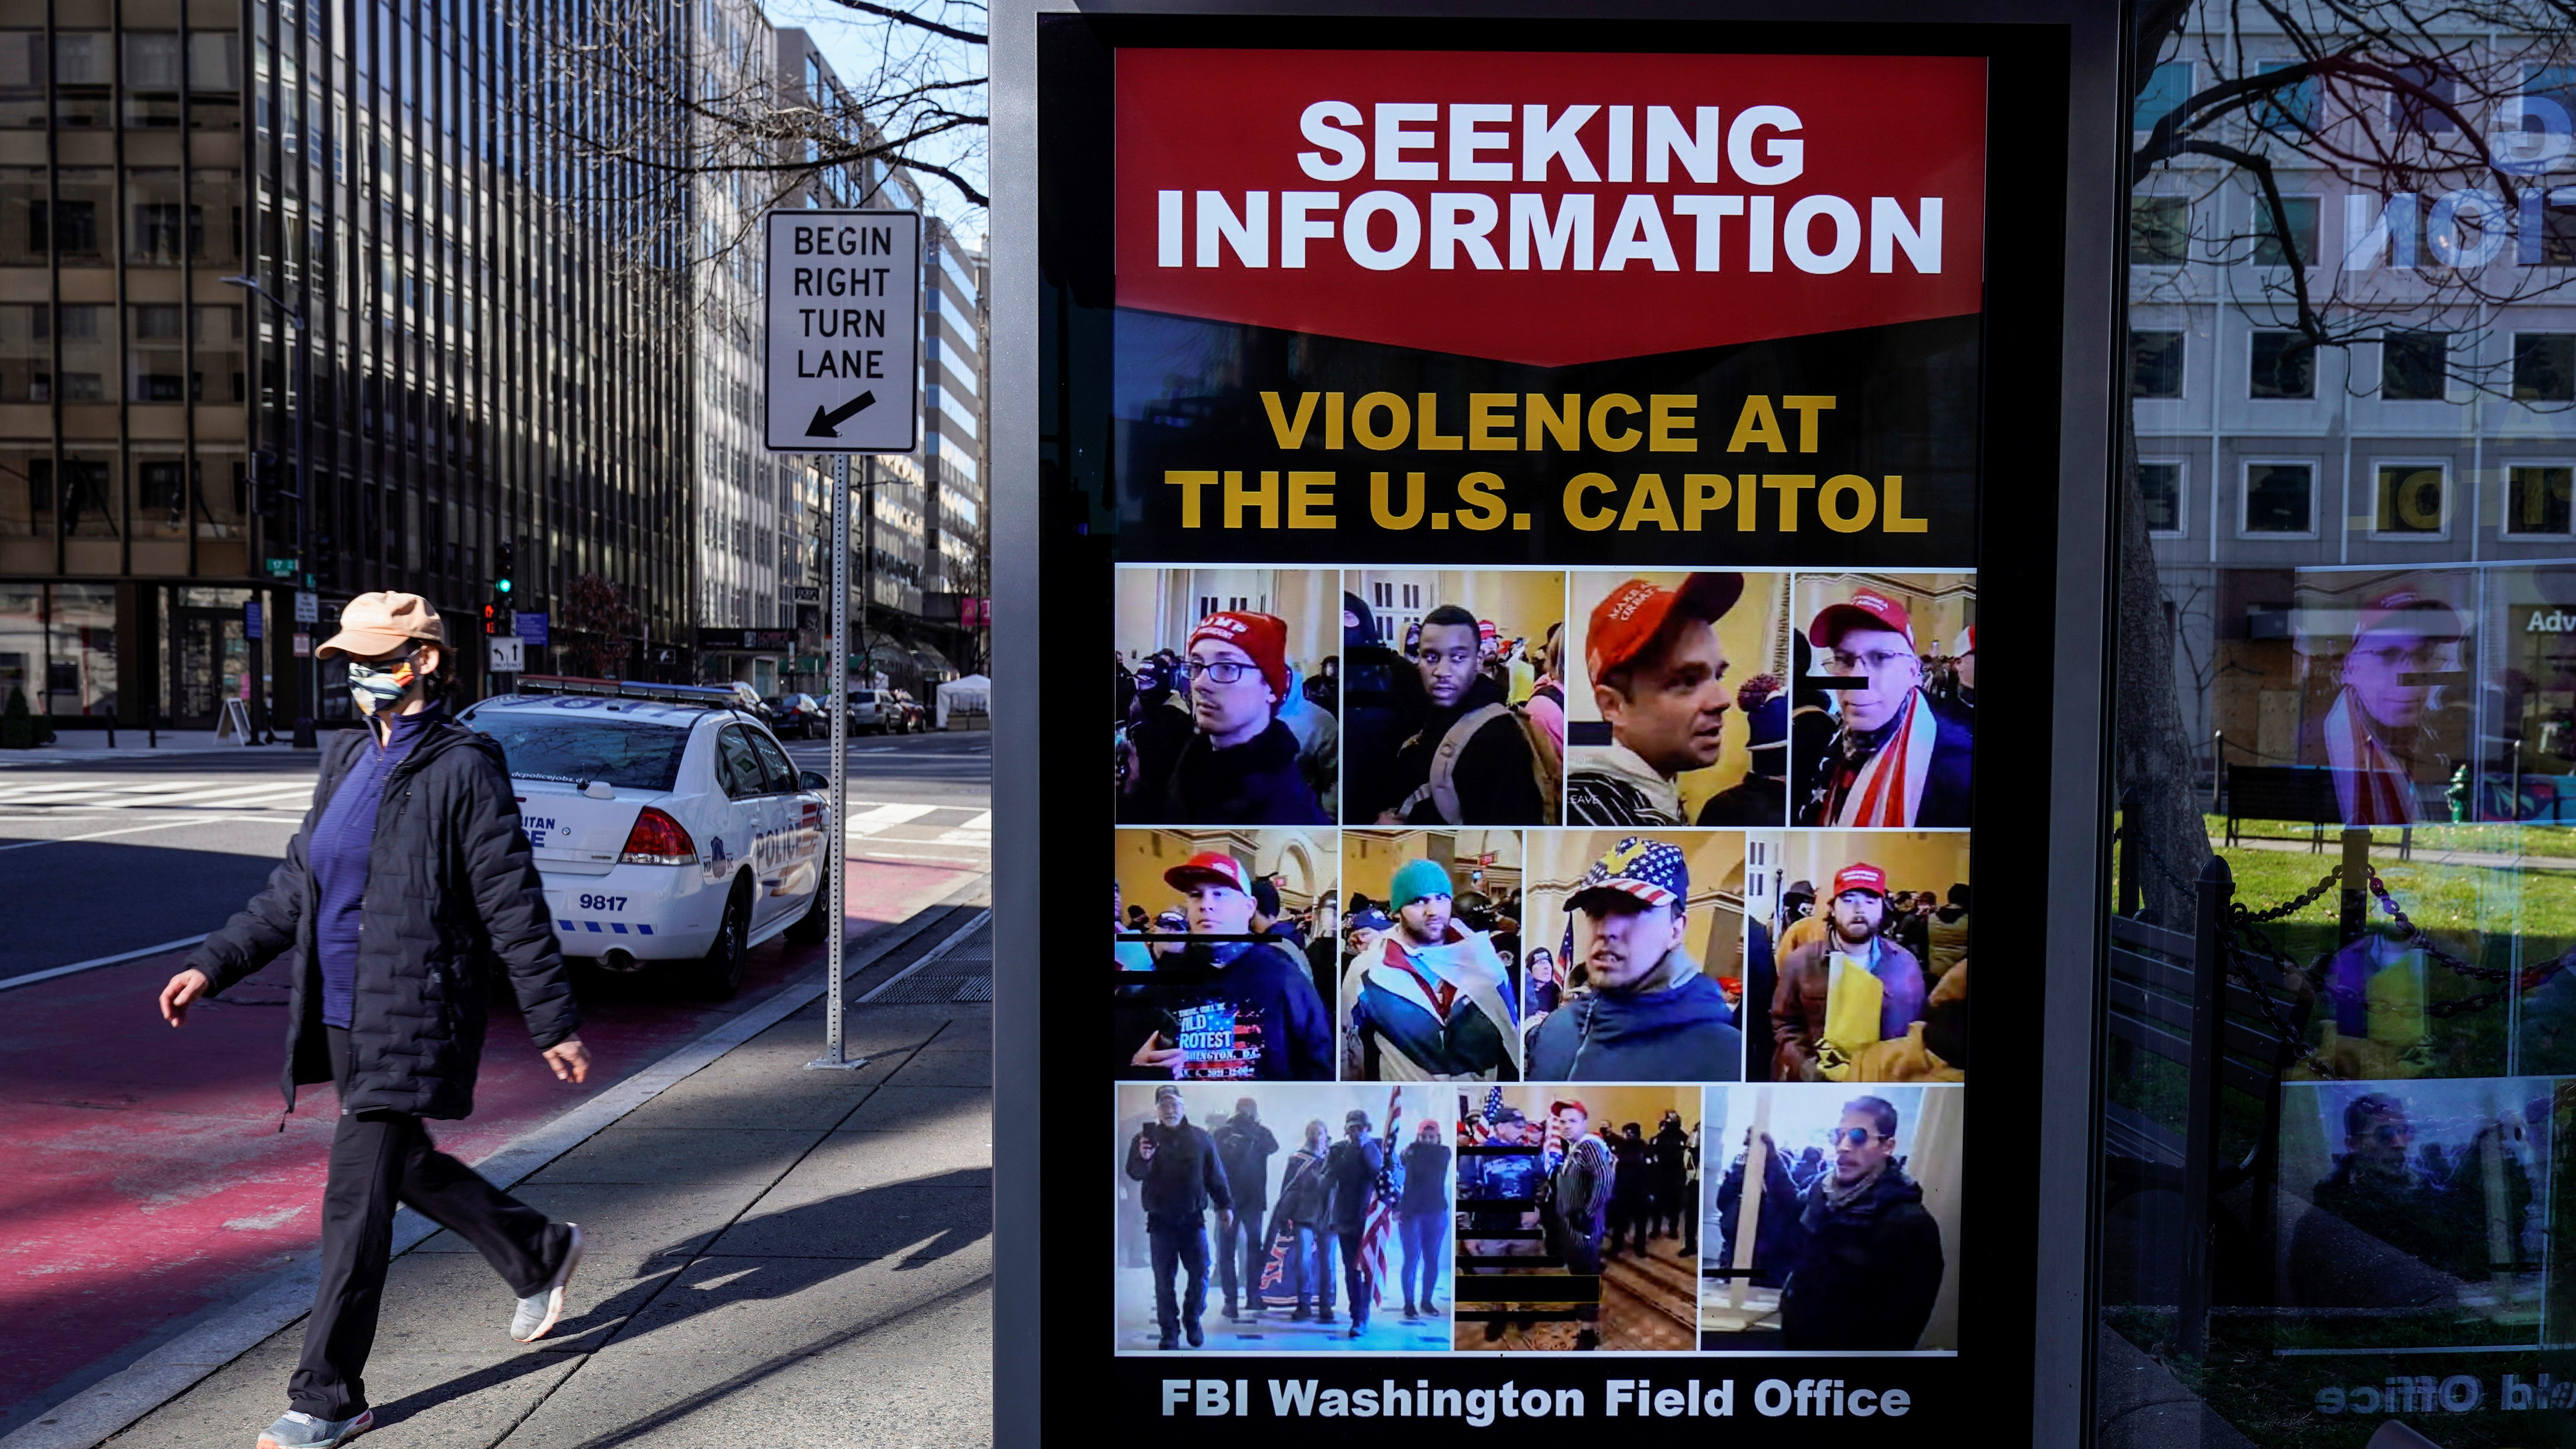 A pedestrian walks past a sign at the bus stop from the FBI seeking information on supporters of U.S. President Donald Trump who stormed the U.S. Capitol